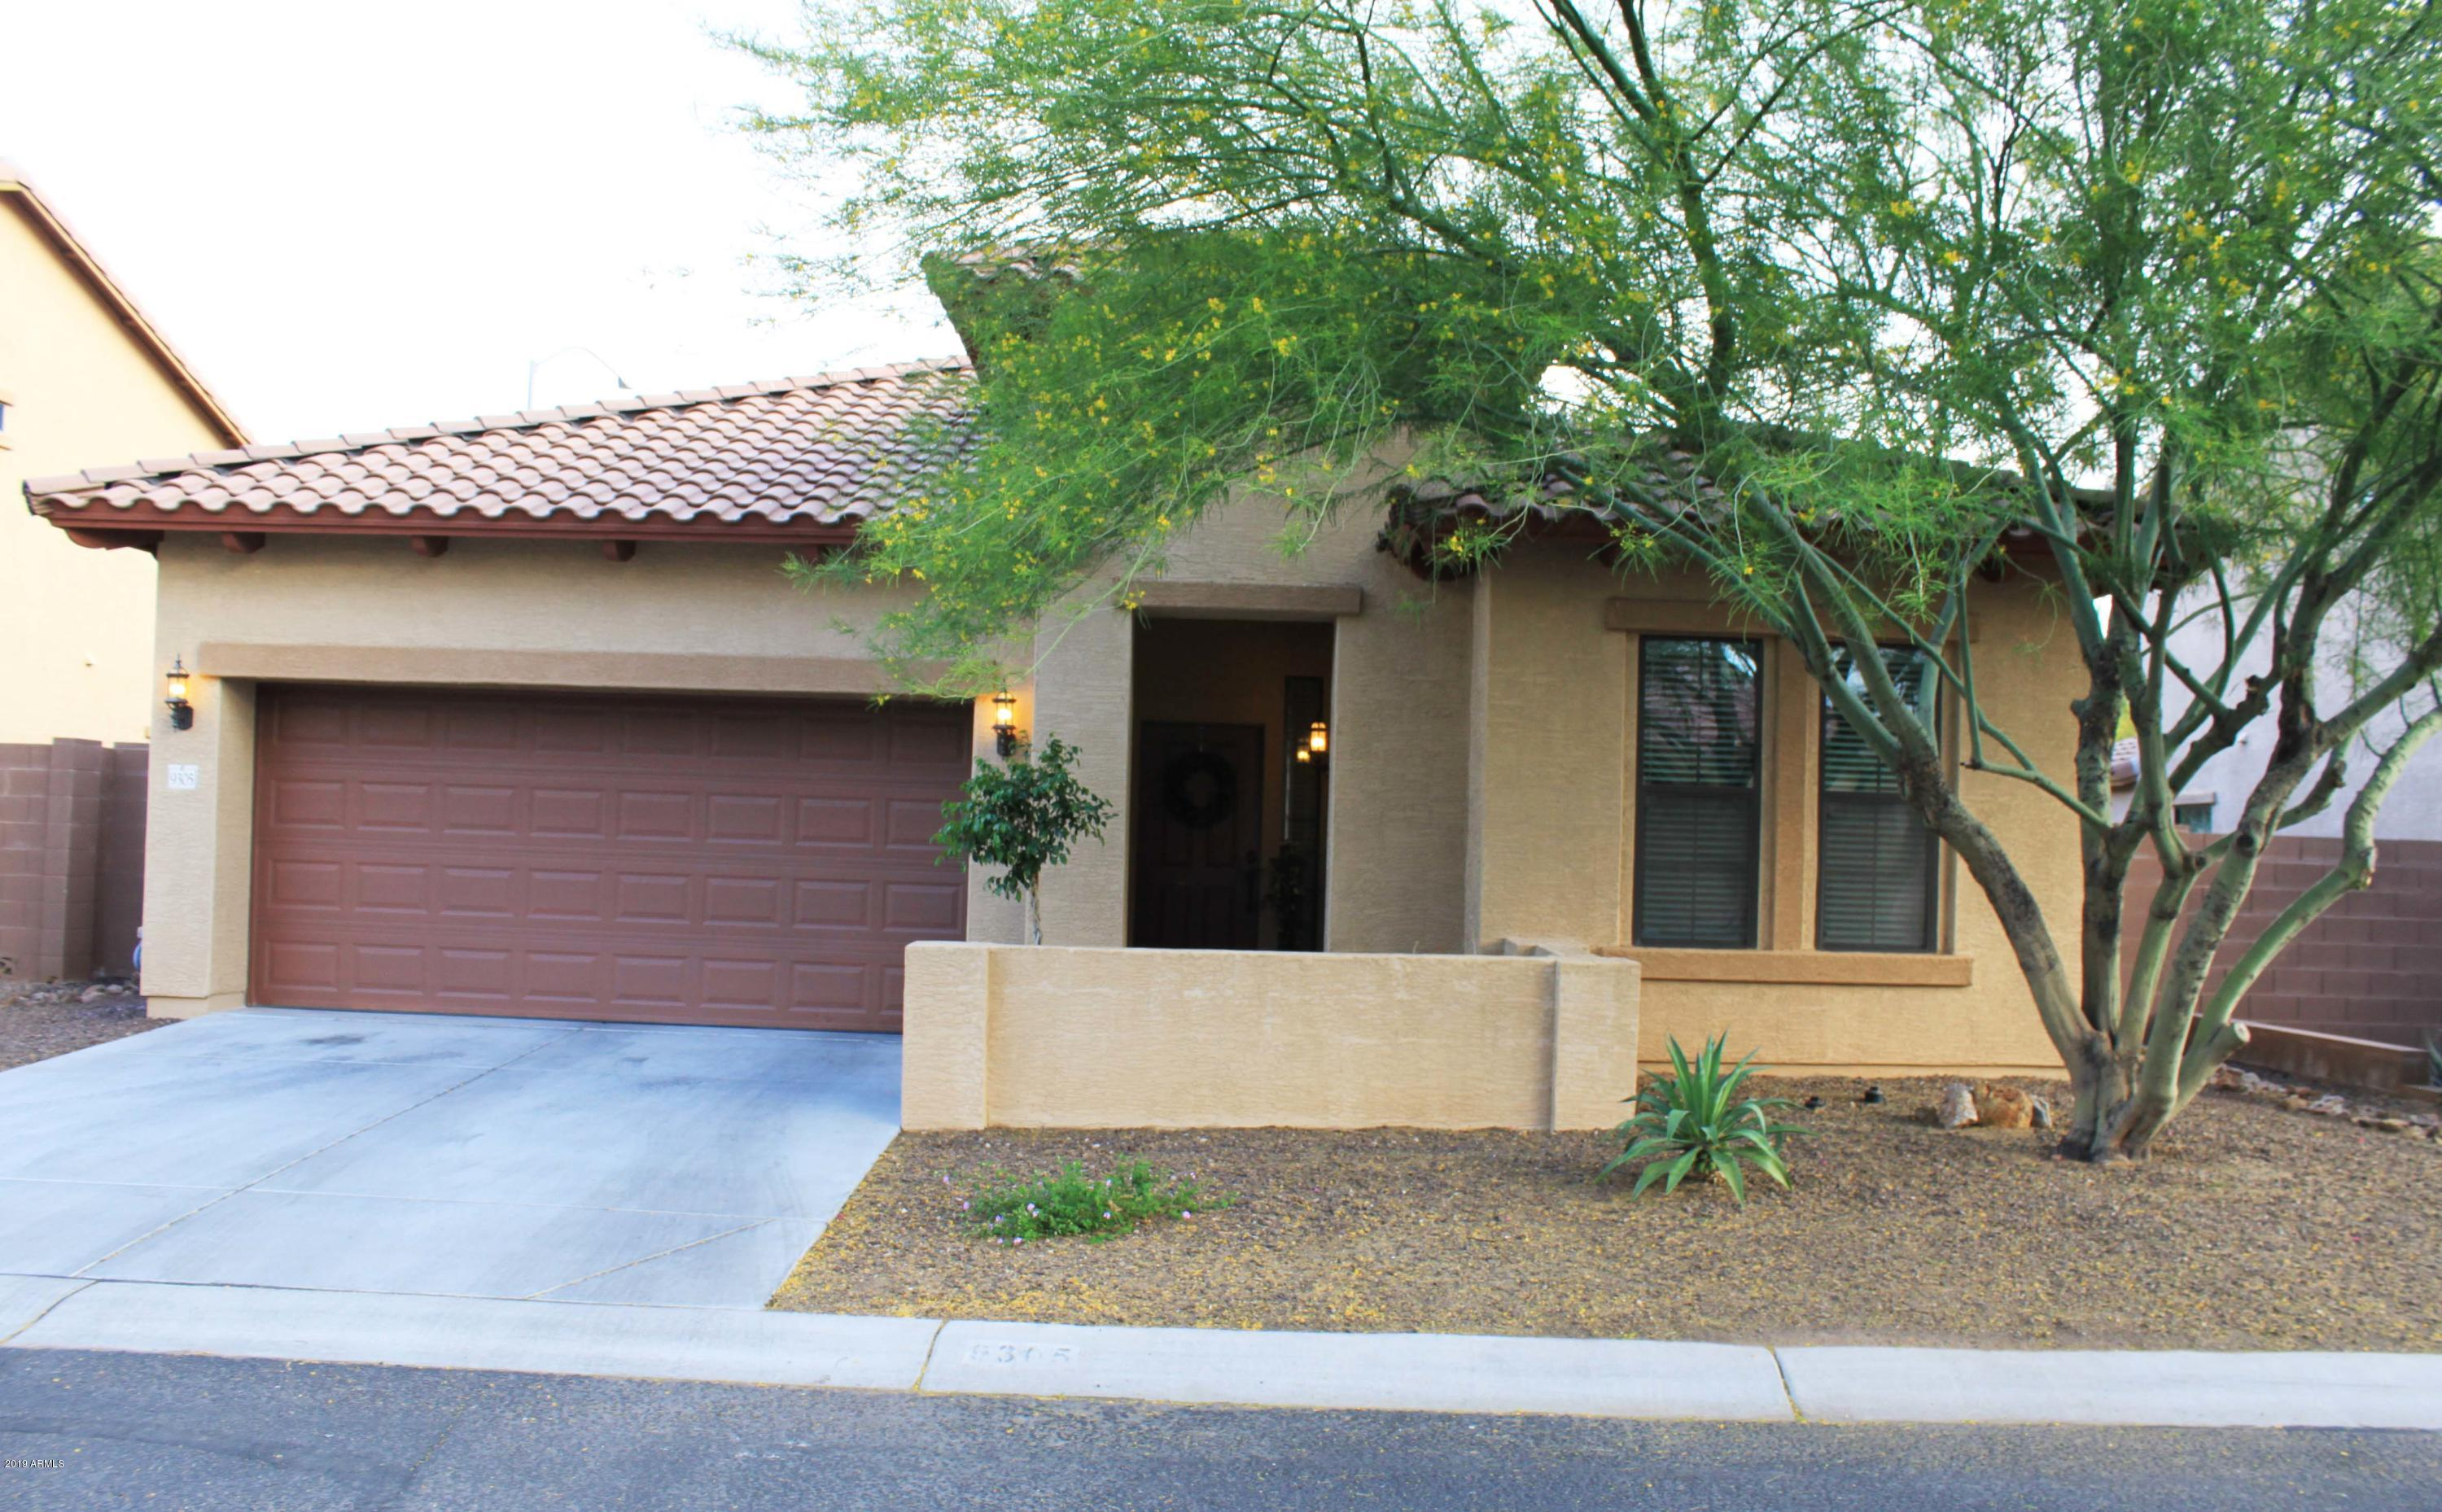 Photo of 9305 E GREENWAY Street, Mesa, AZ 85207